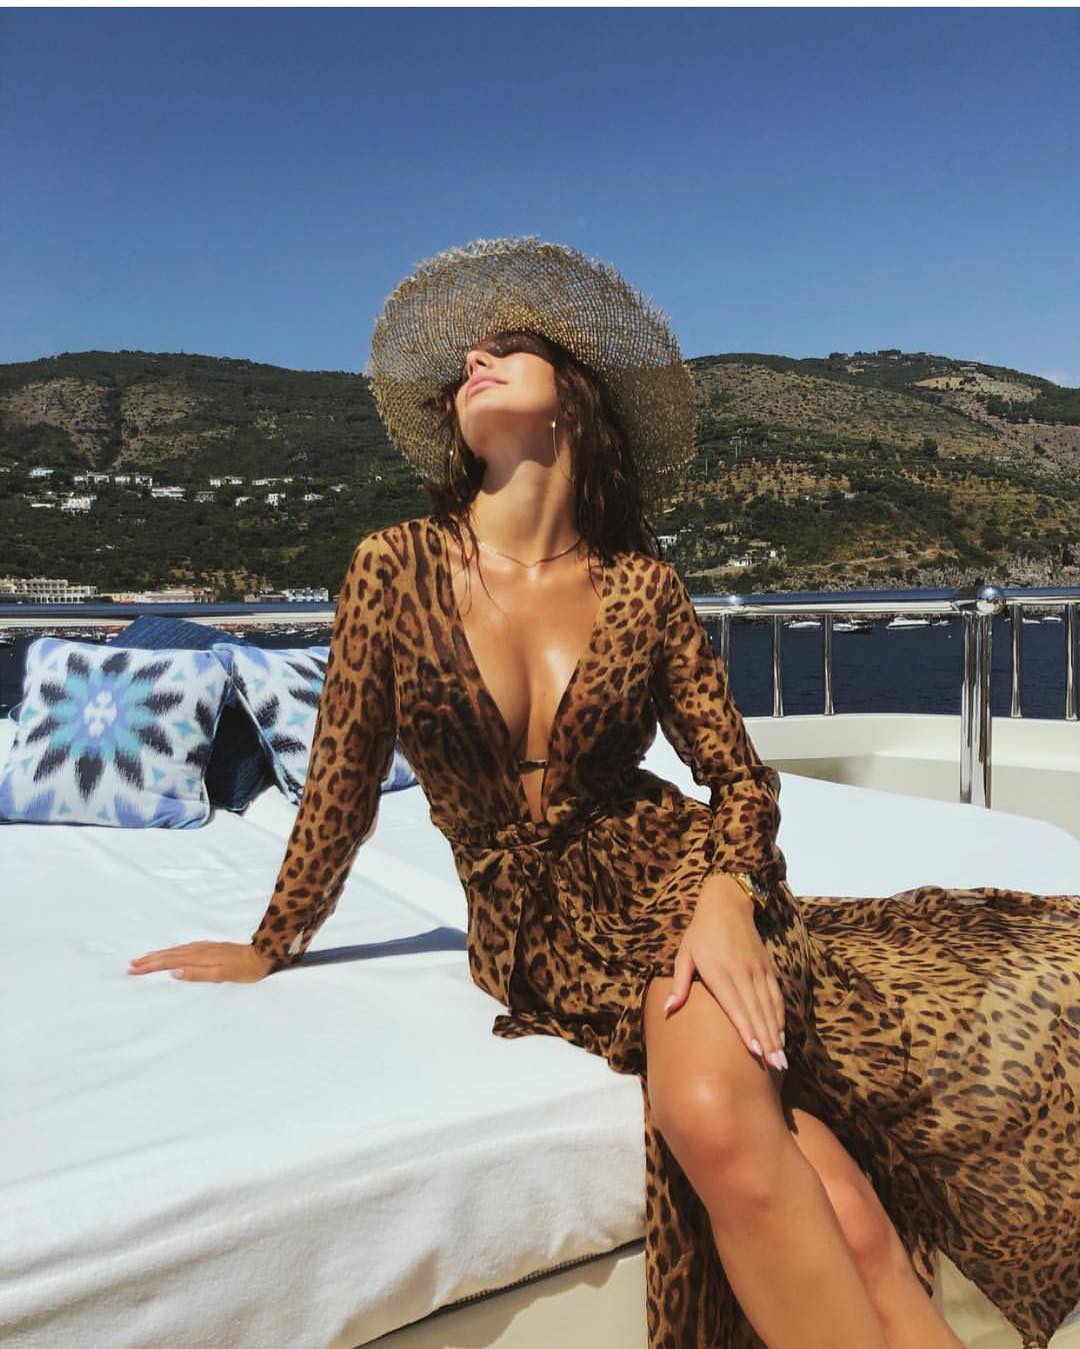 Leopard Print Maxi Dress With Long Sleeves For Summer Boat Trips 2019